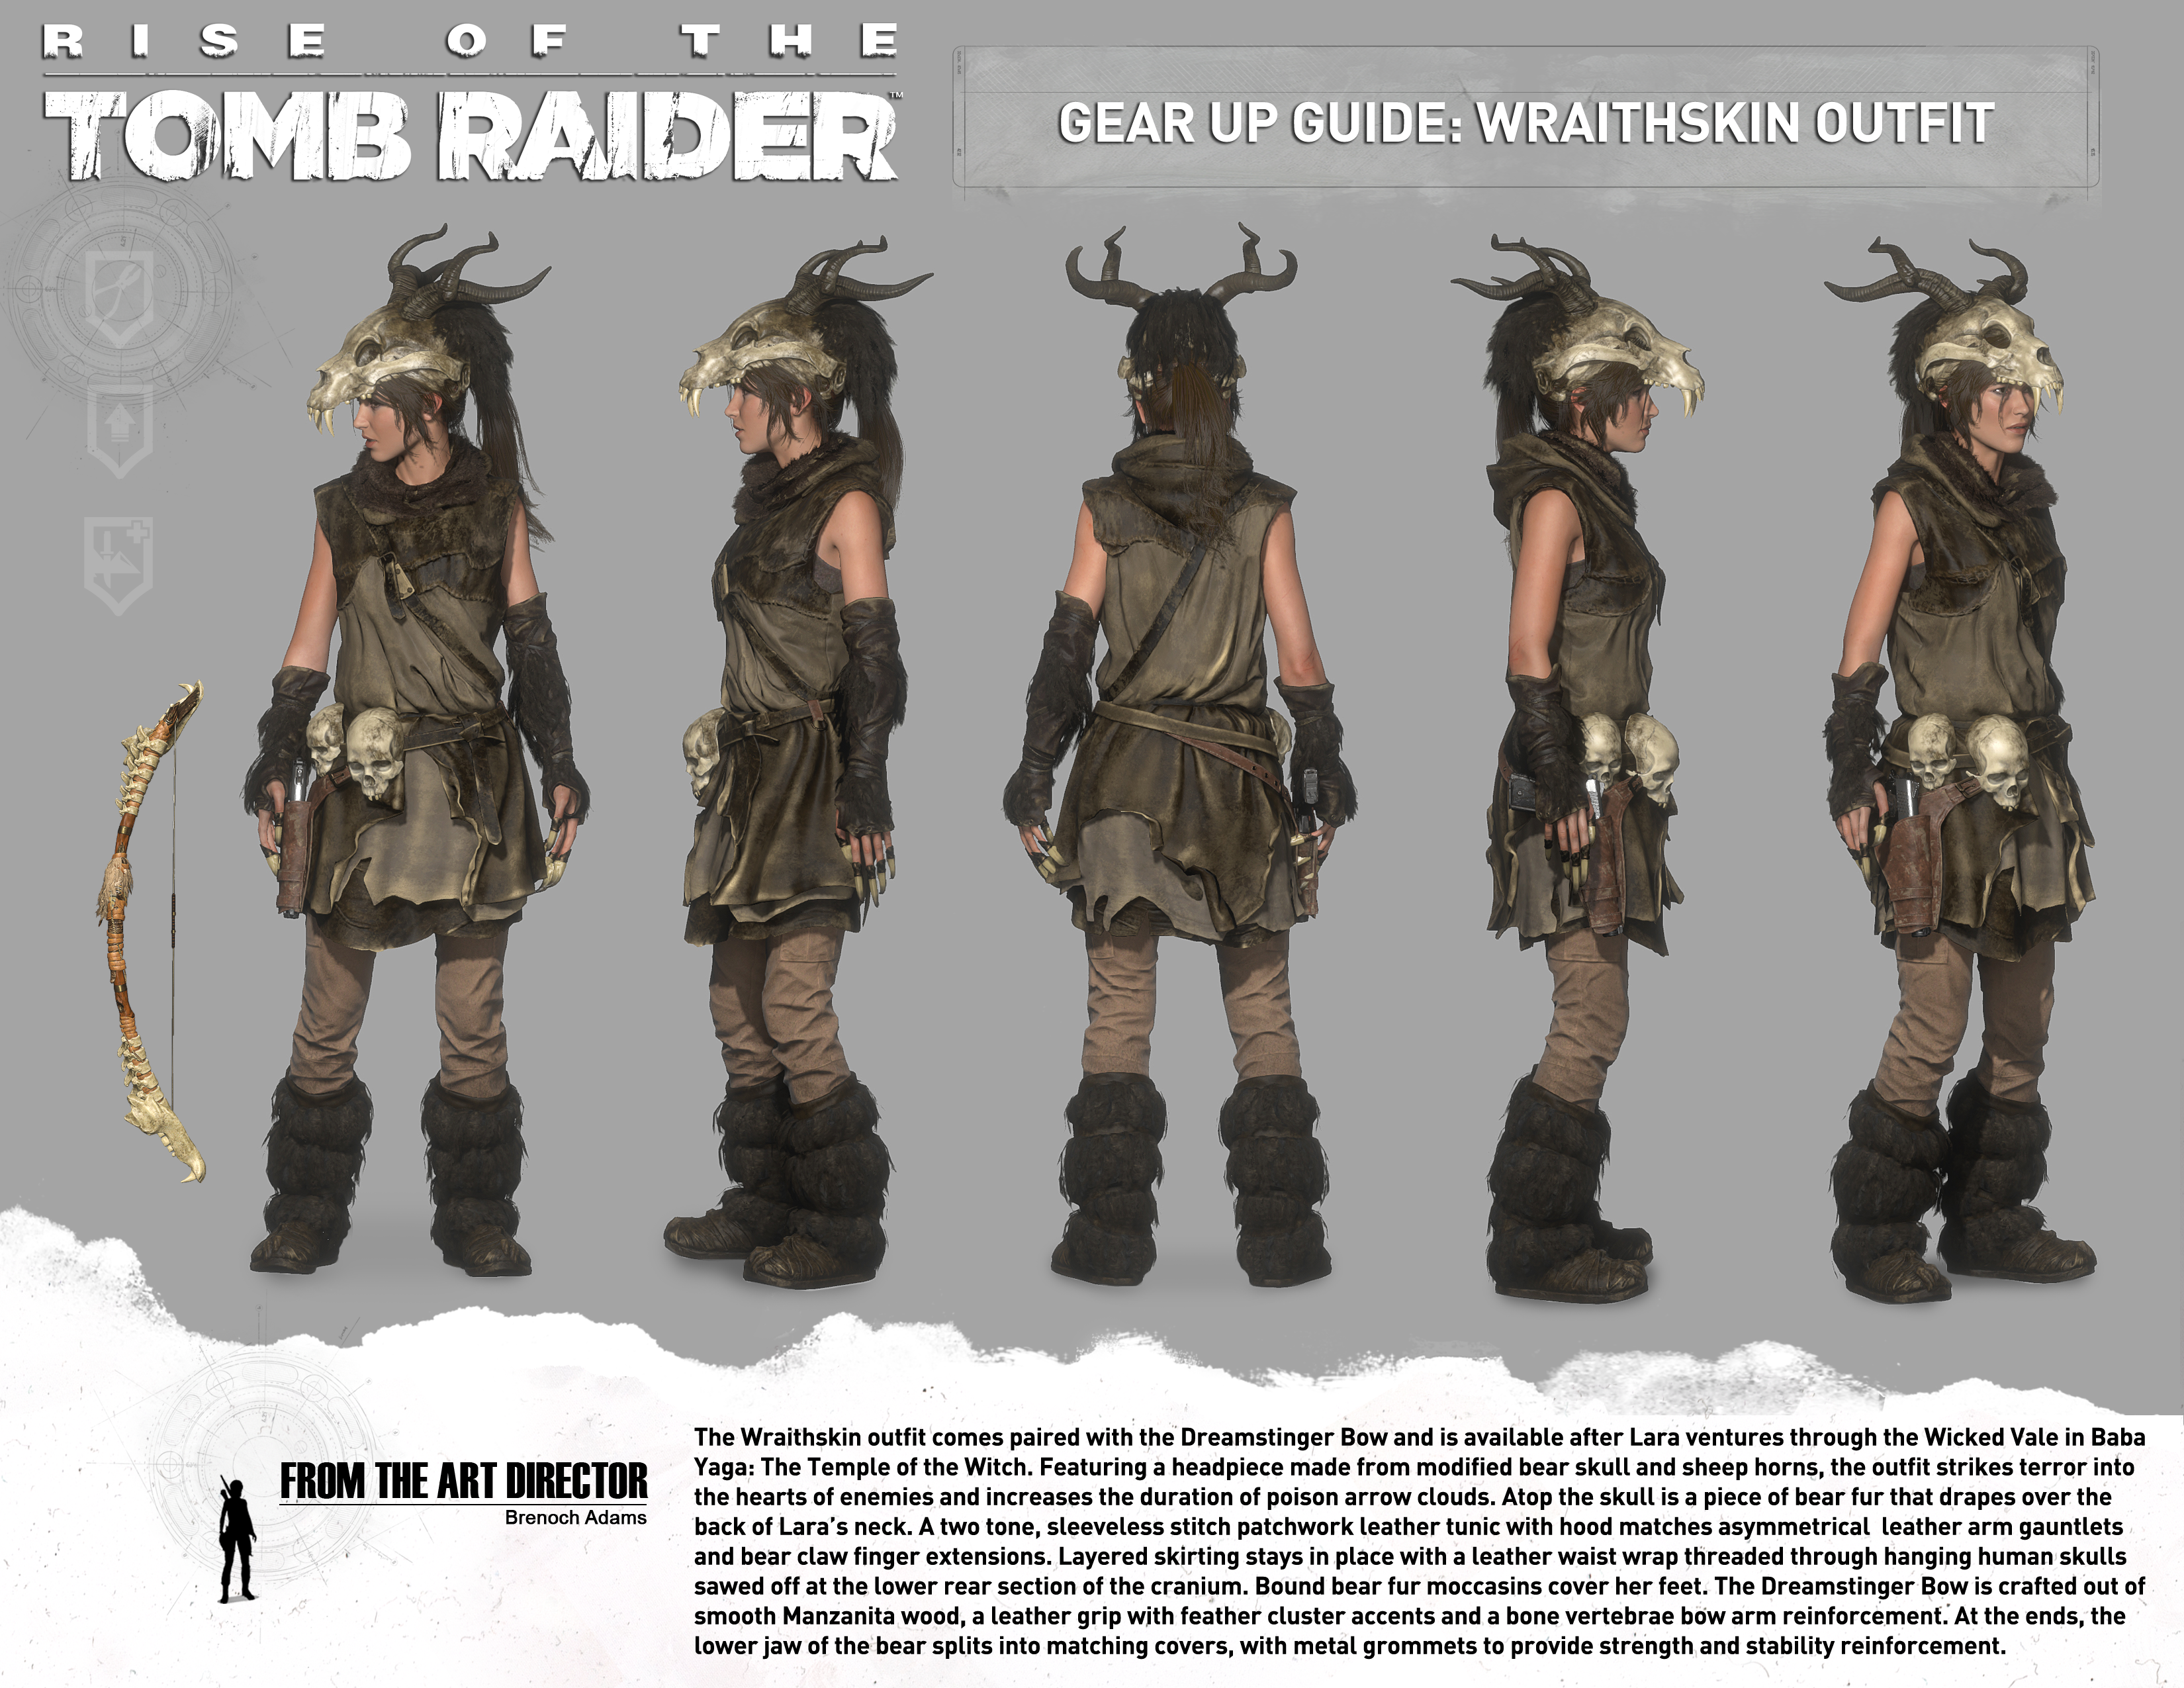 (Gear Up Guide) & Guide to All Outfits - Rise of the Tomb Raider